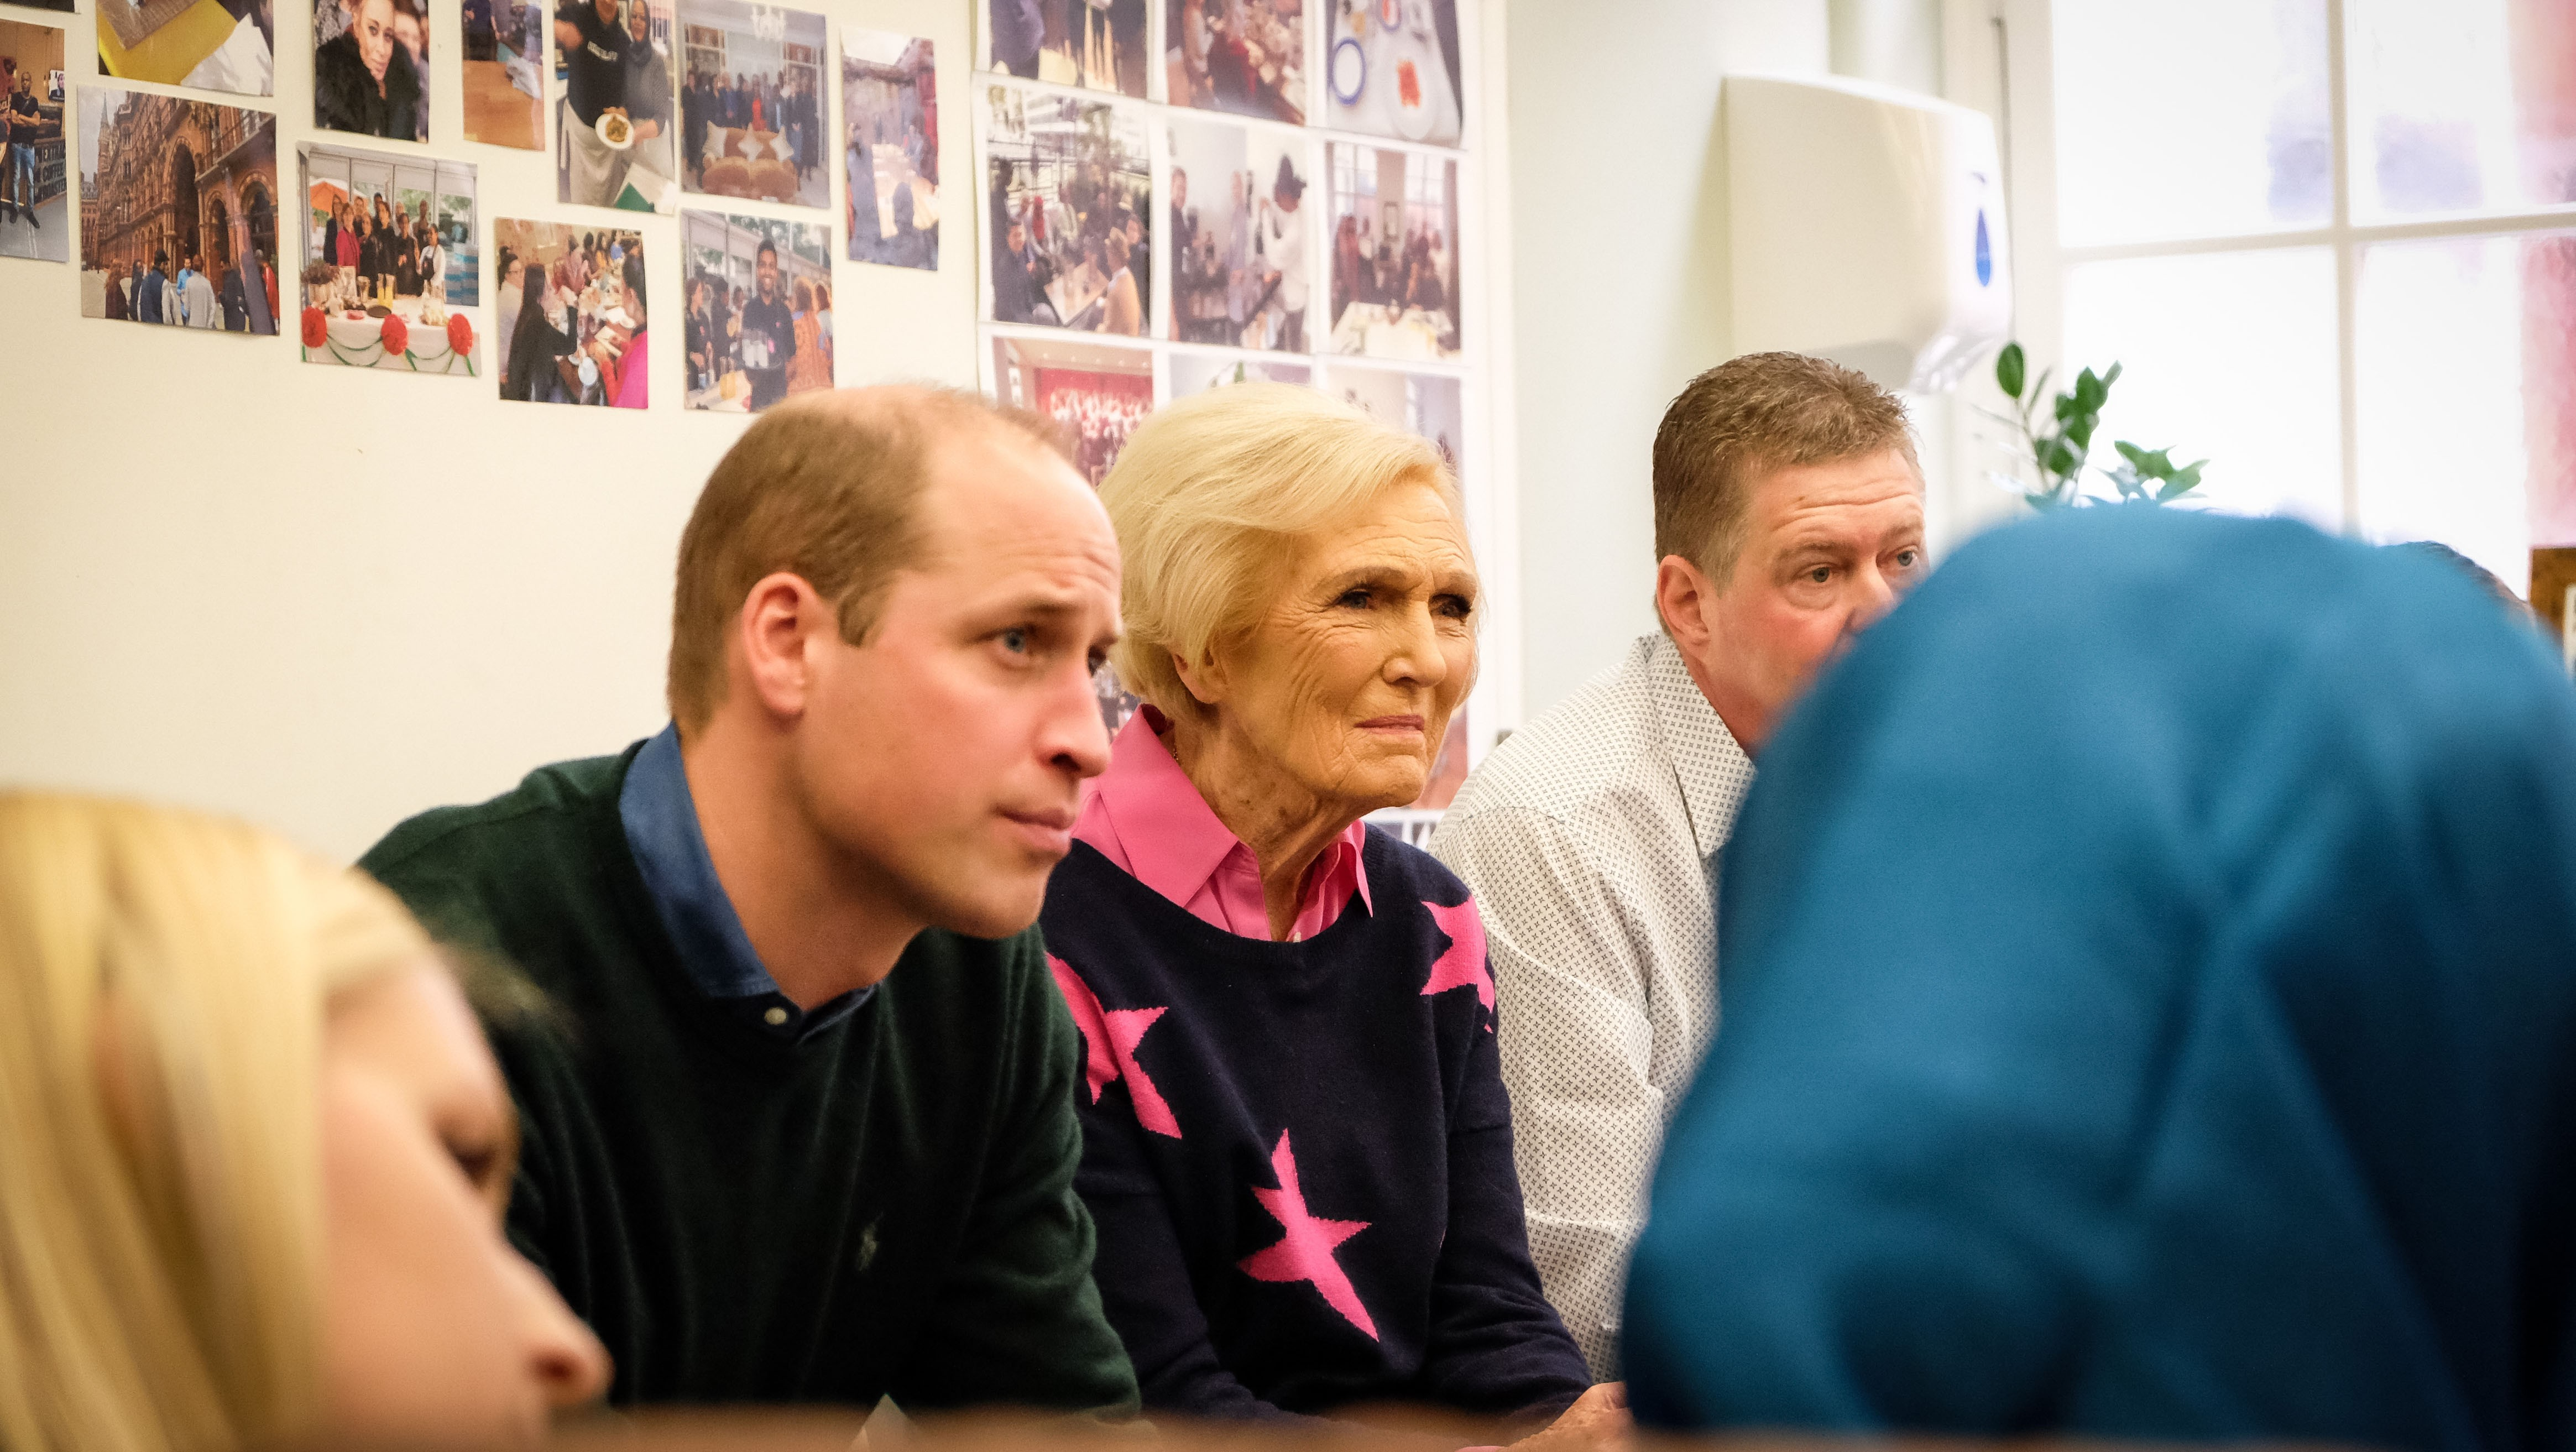 The Duke of Cambridge and Mary Berry listening in to a group conversation at The Passage, London.